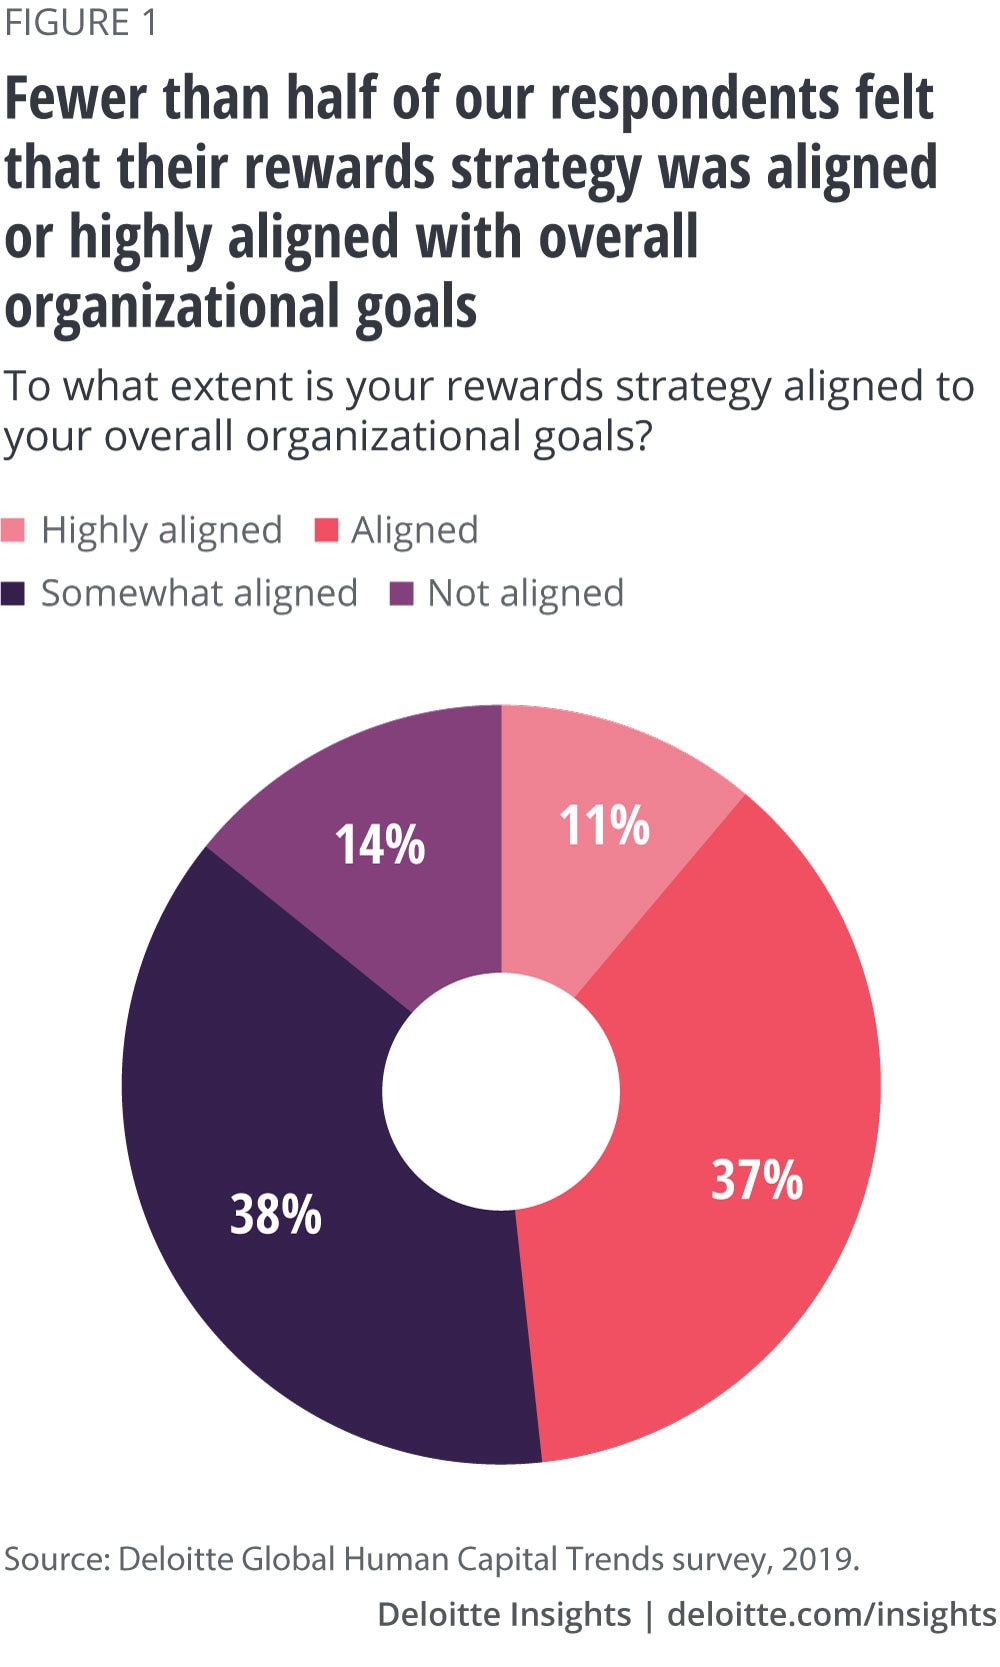 Fewer than half of our respondents felt that their rewards strategy was aligned or highly aligned with overall organization goals